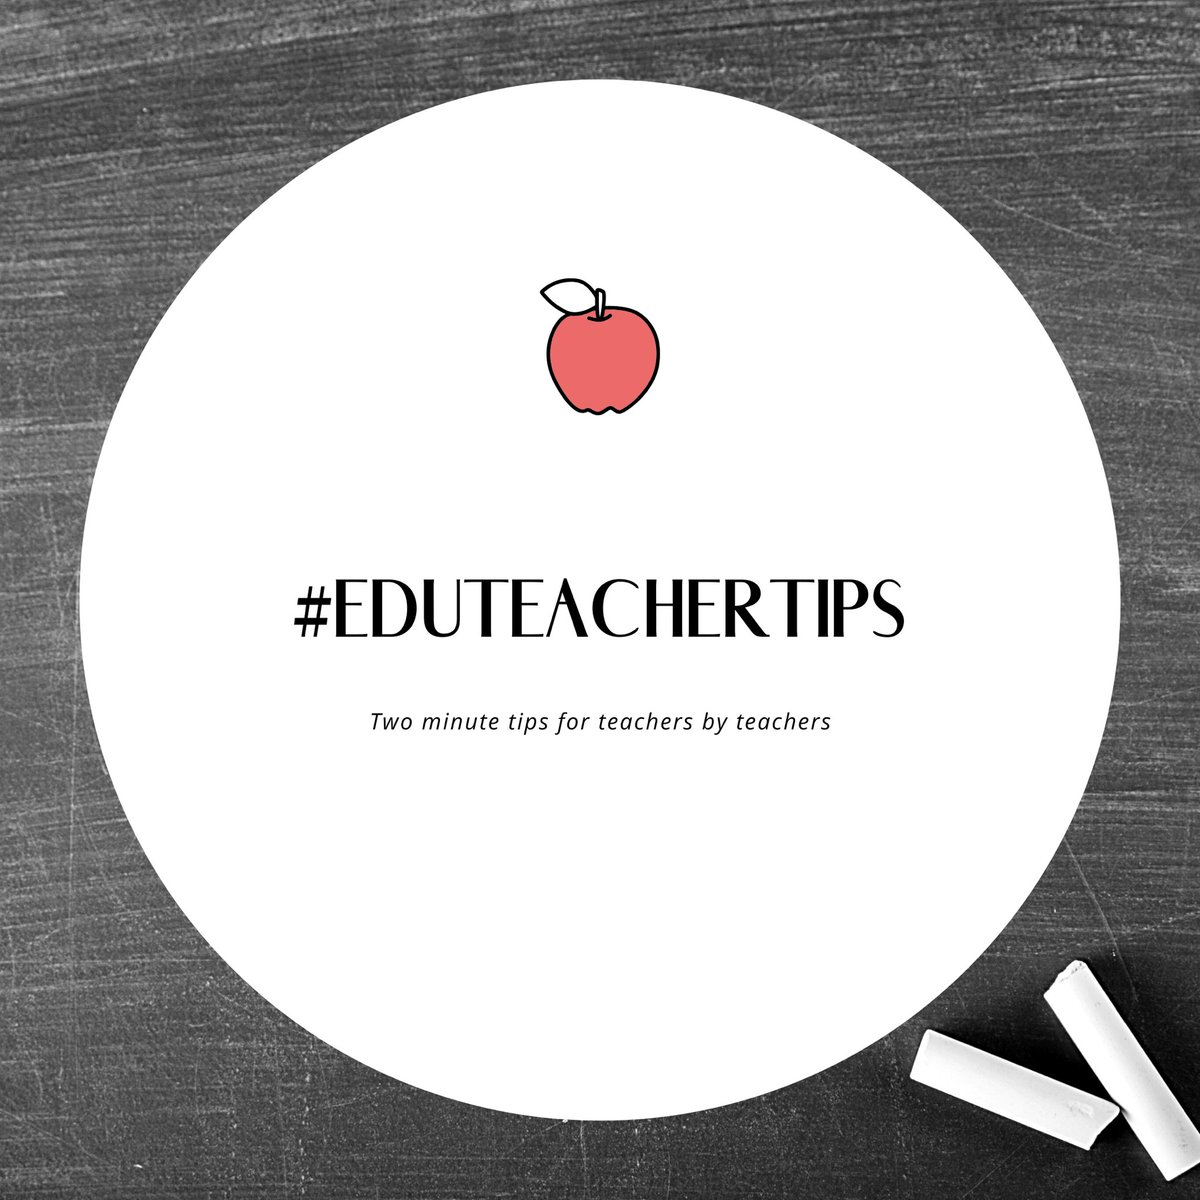 Wait until our children & young people hear their teachers have become #YouTubers 😂😂😂  #EduTeacherTips is a new YouTube channel for teachers by teachers.   If you have a 2 minute tip you'd like to share, DM for details. Everyone is encouraged to share their expertise 💖 https://t.co/MXpcuhxSF6